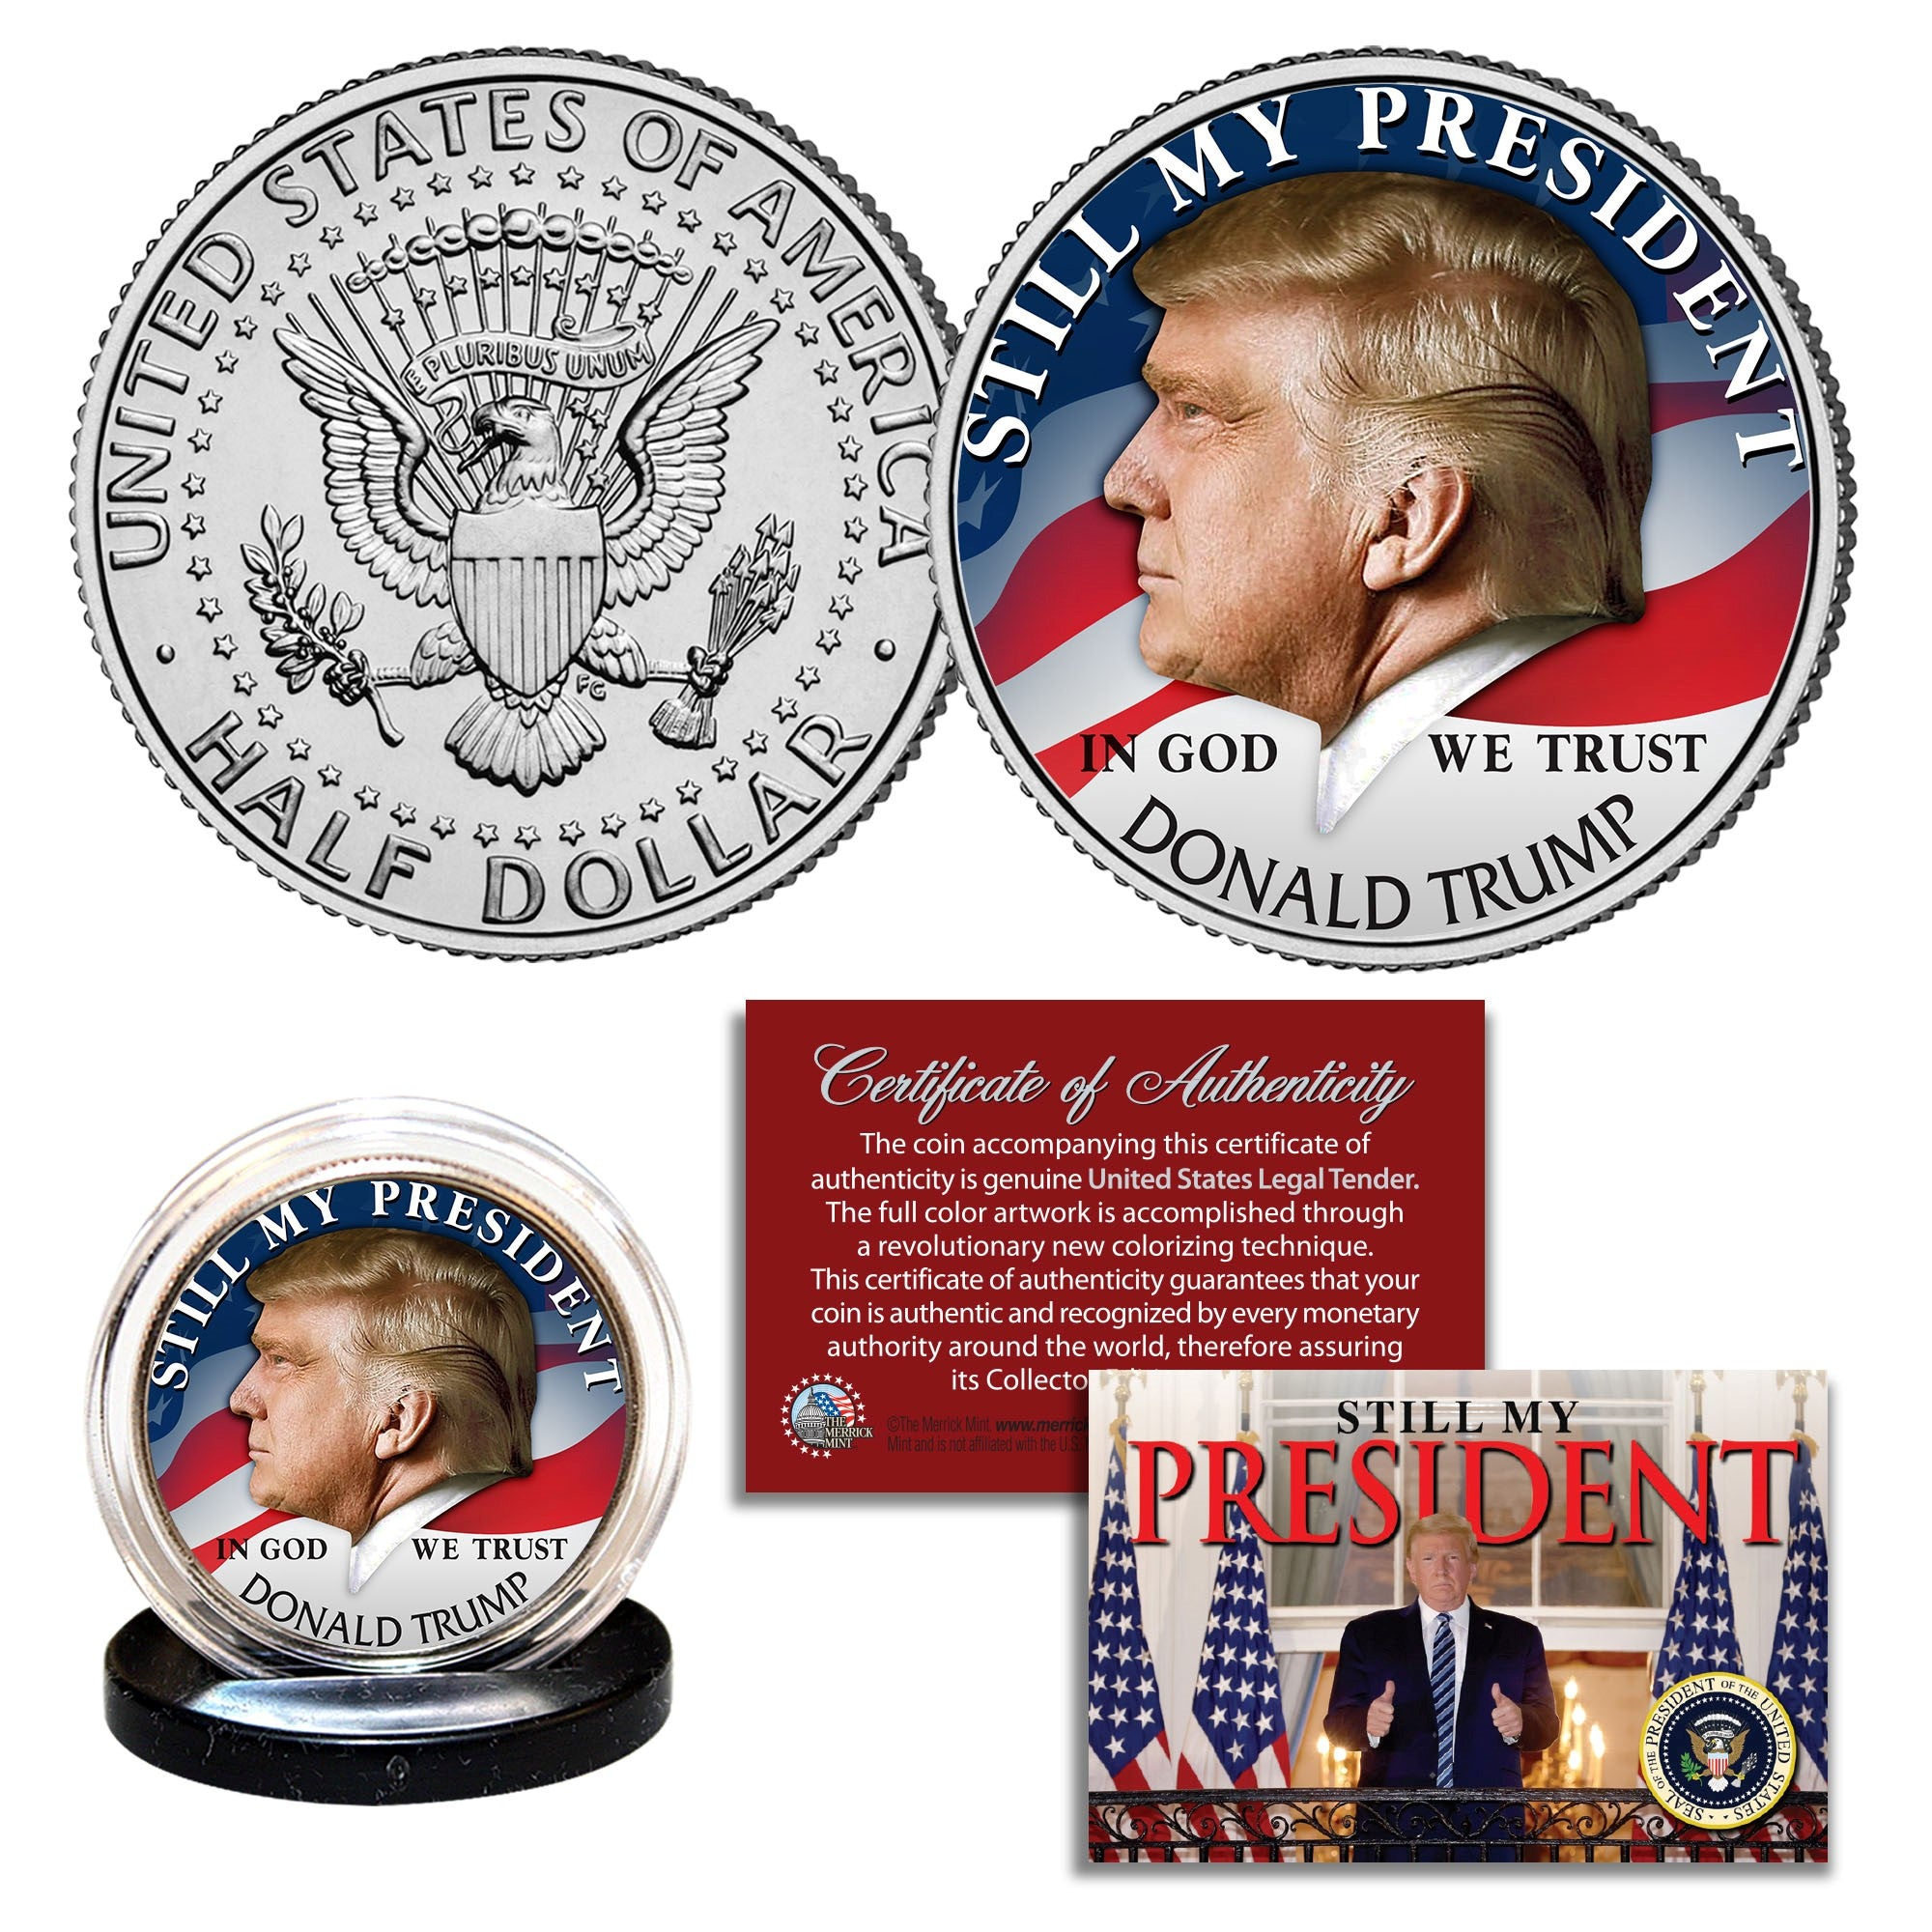 Still My President Coin